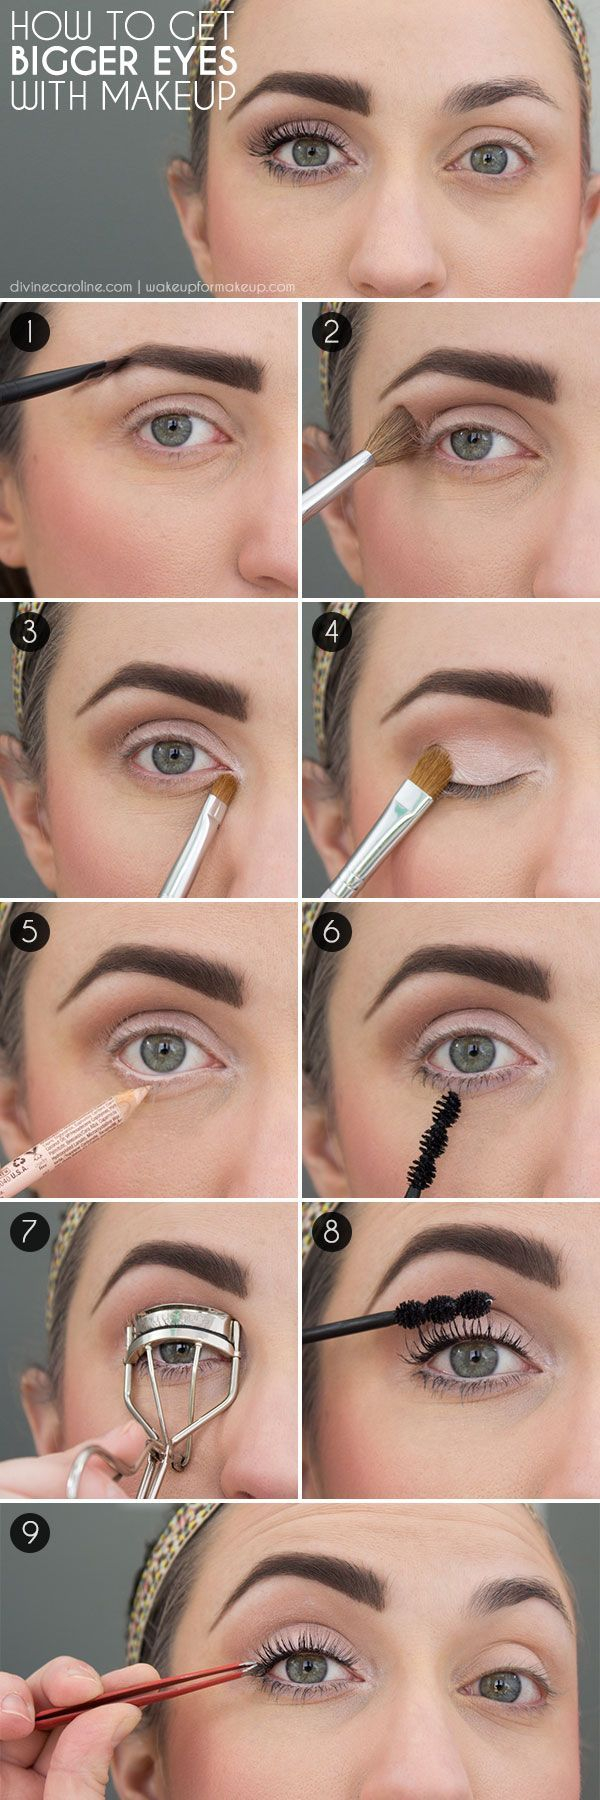 Makeup Designs For Eyes 17 Super Basic Eye Makeup Ideas For Beginners Pretty Designs